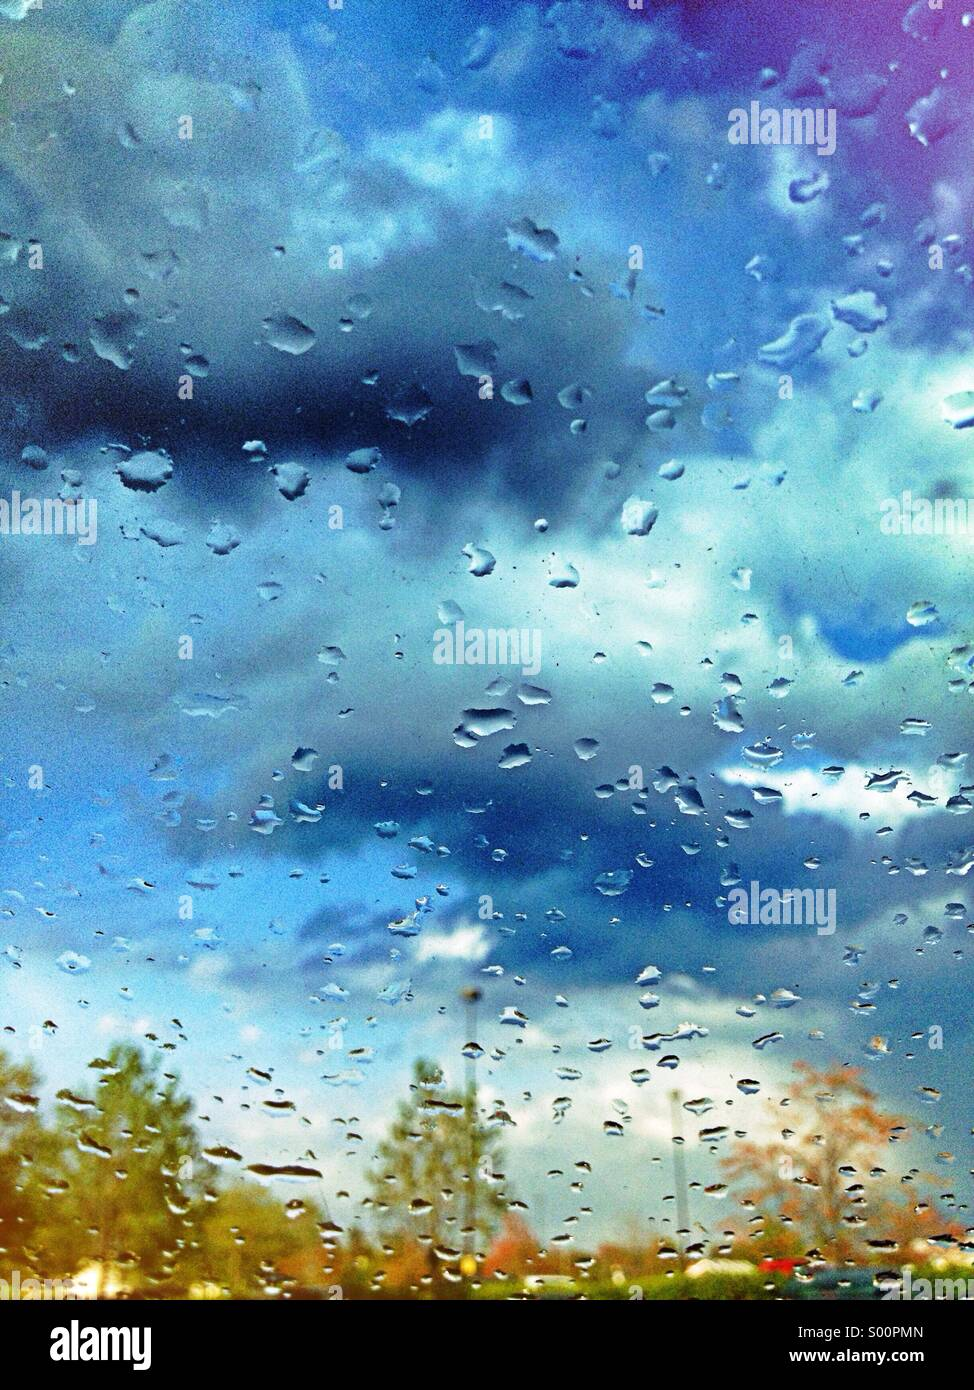 Rainy blue sky and trees seen through wet window - Stock Image